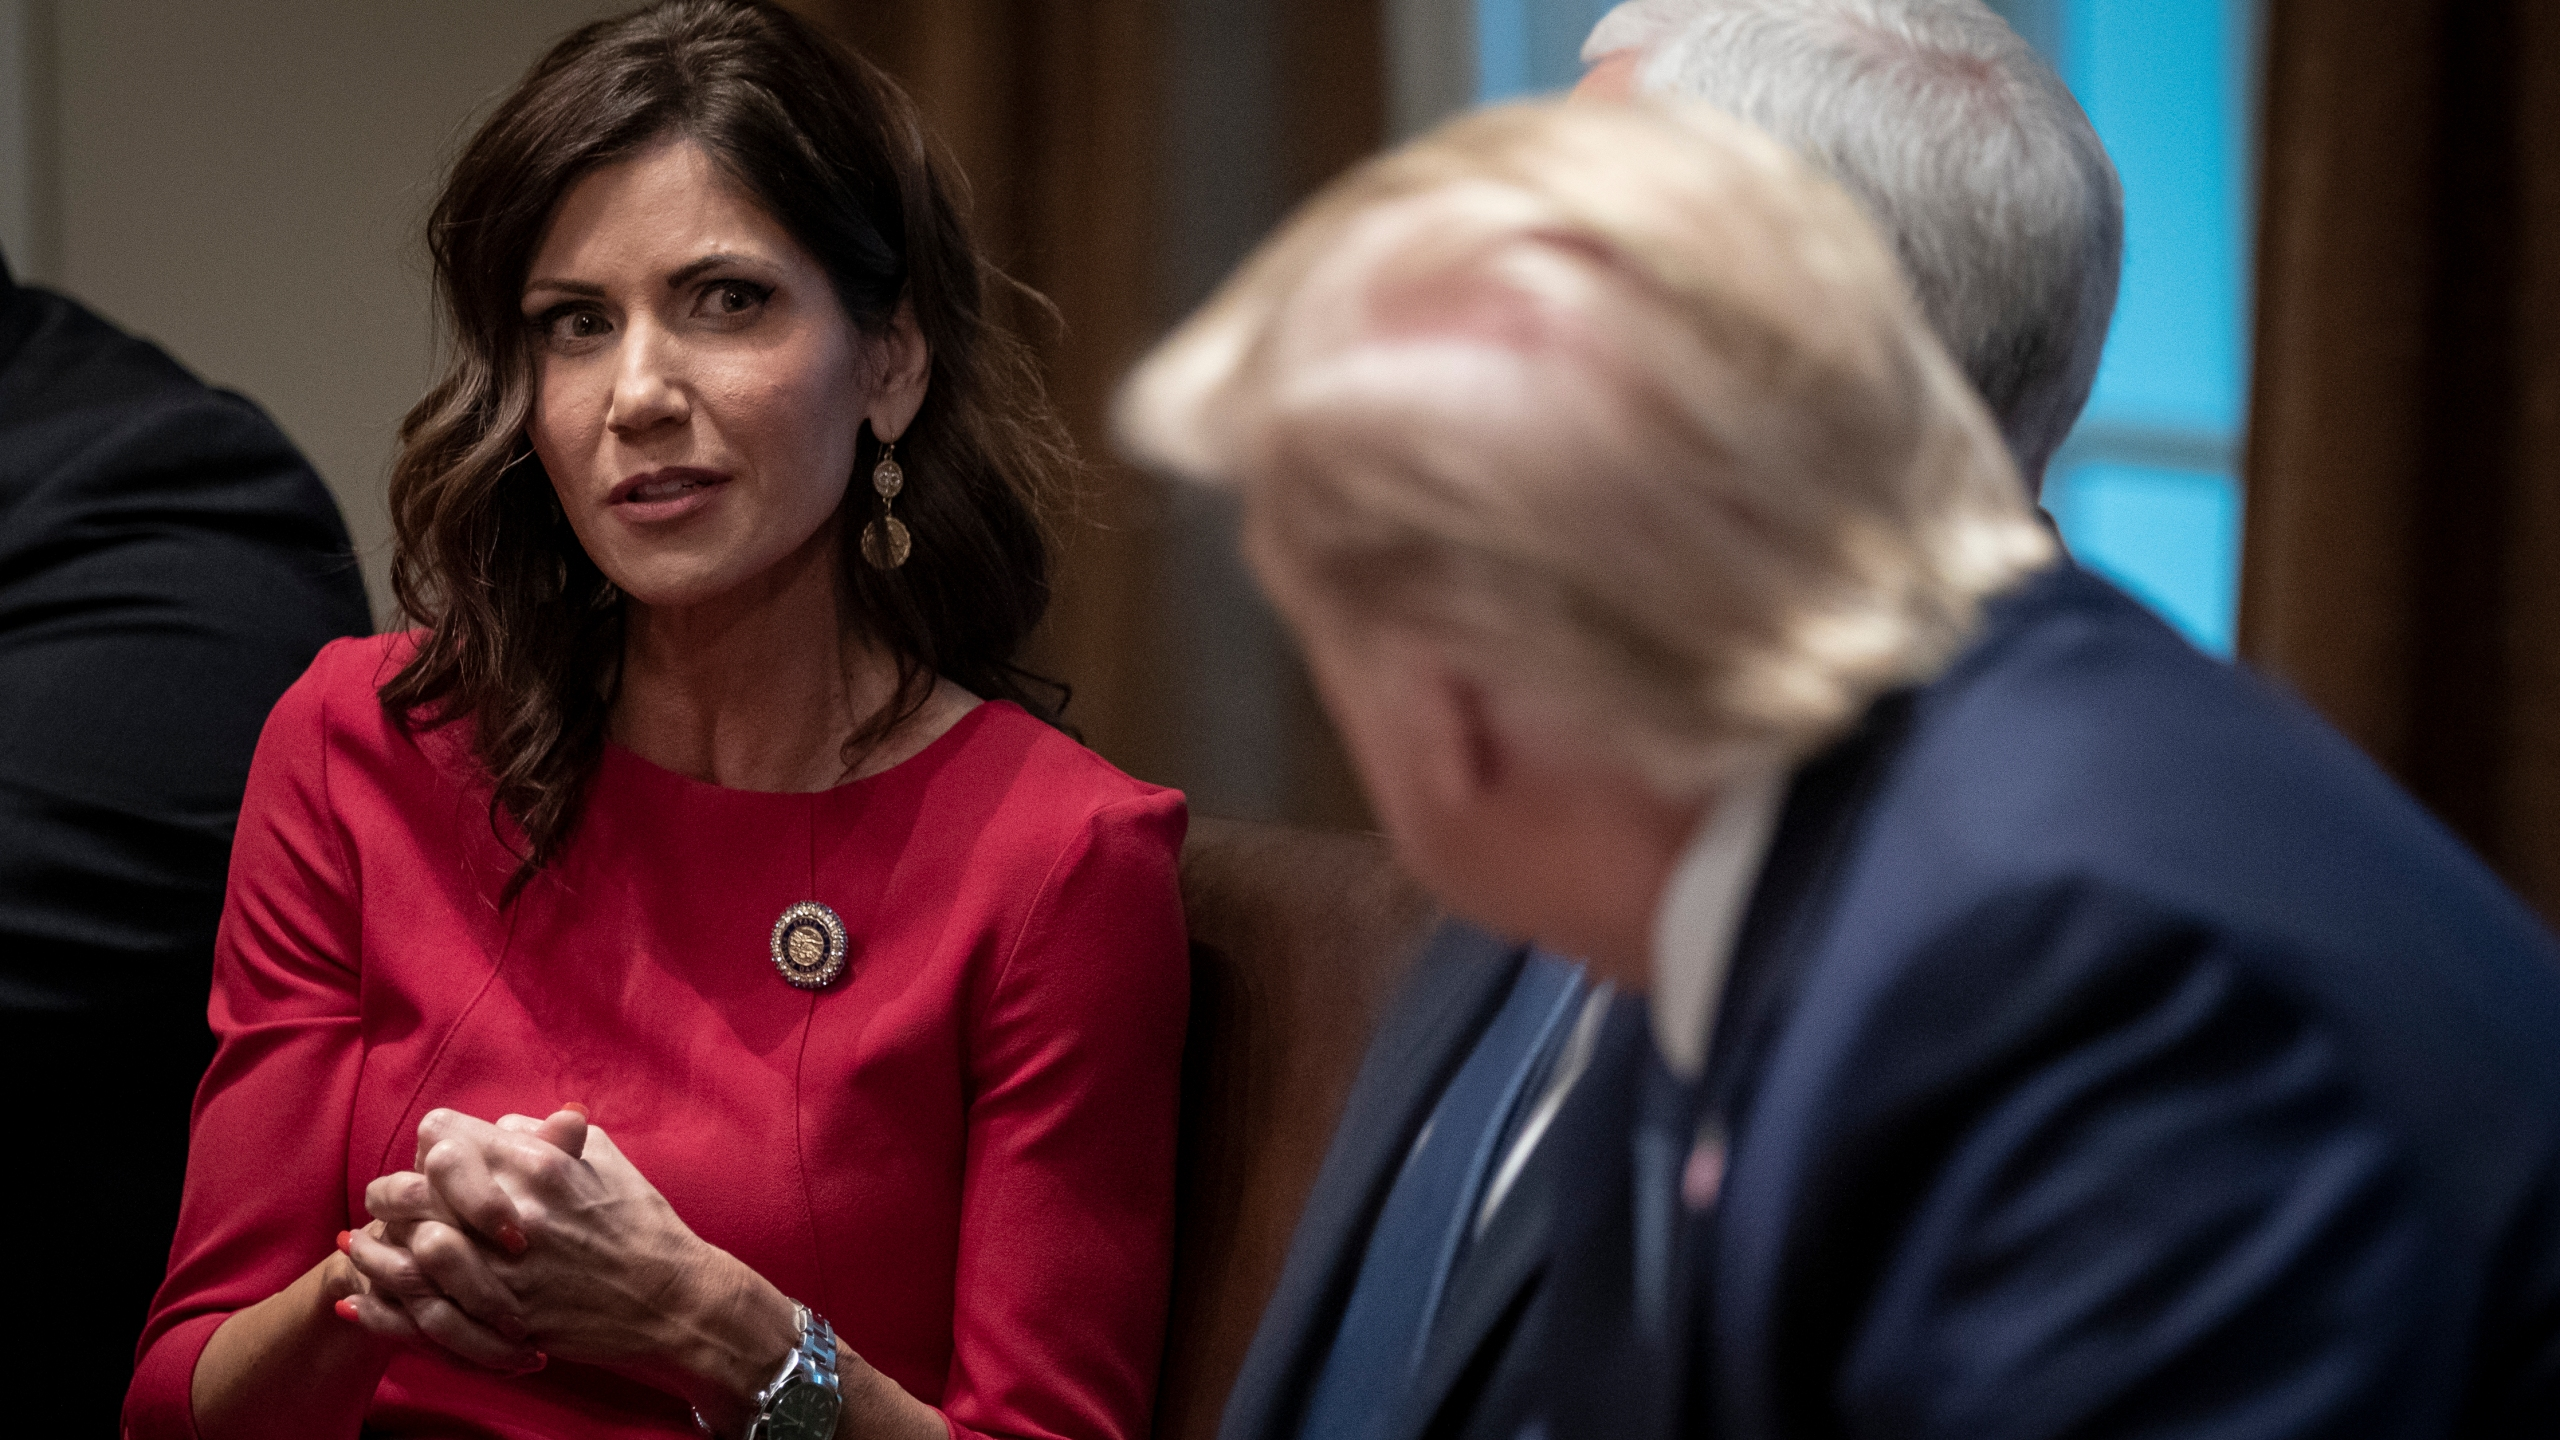 Gov. Kristi Noem of South Dakota speaks as U.S. President Donald Trump listens during a meeting about the Governors Initiative on Regulatory Innovation in the Cabinet Room of the White House on Dec. 16, 2019, in Washington, D.C. (Drew Angerer/Getty Images)